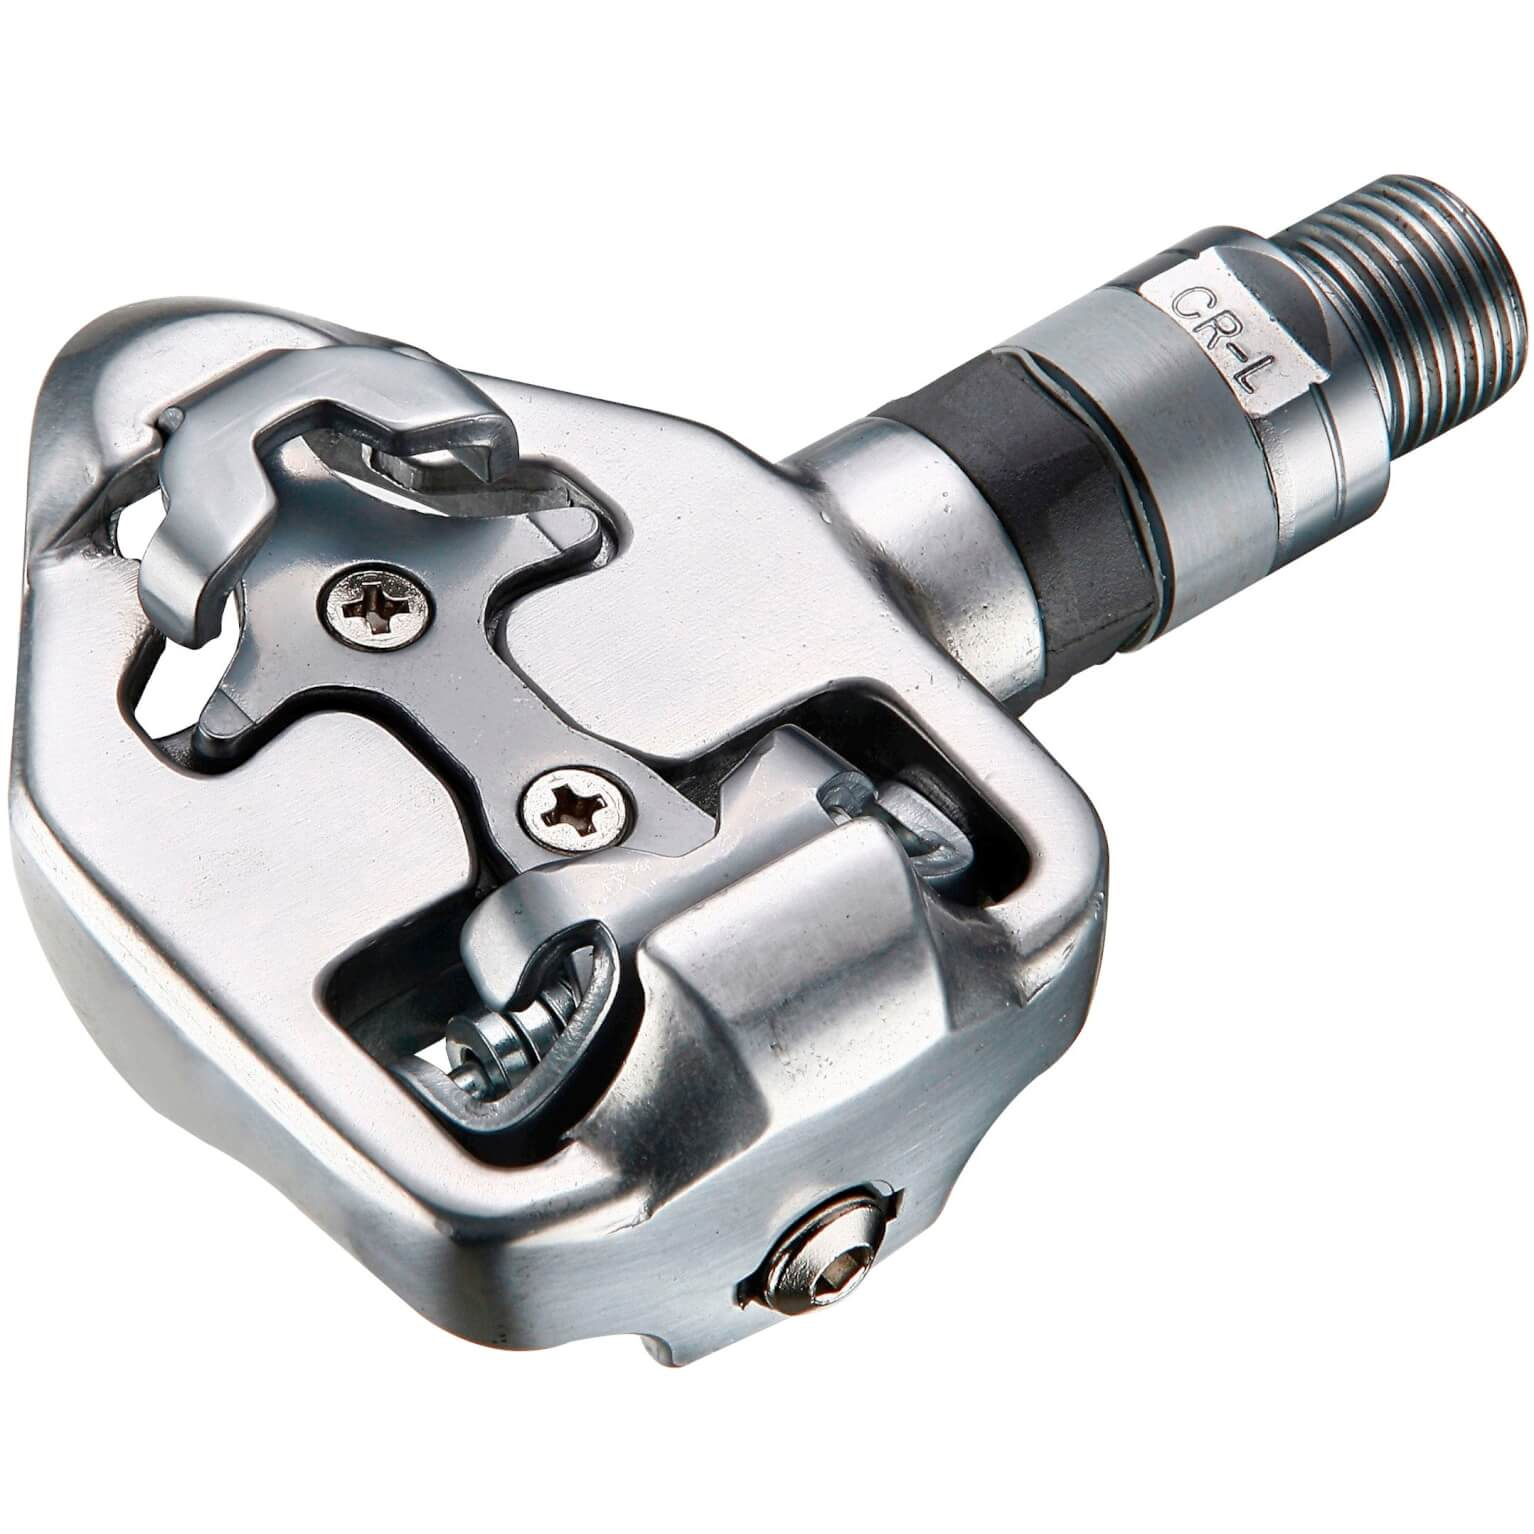 Union Pedalen 5400 Race SPD